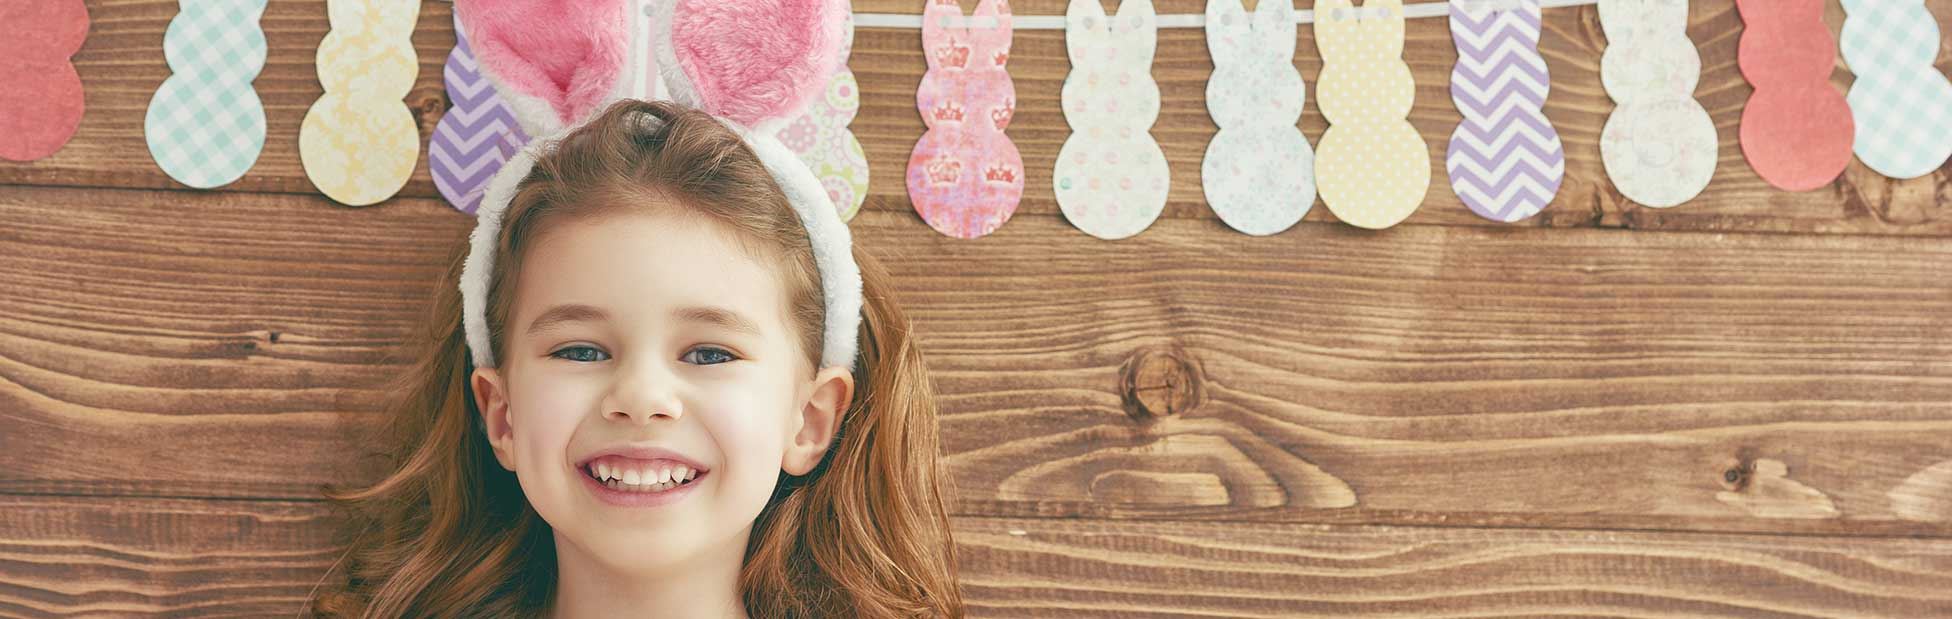 Girl smiling wearing Easter bunny ears